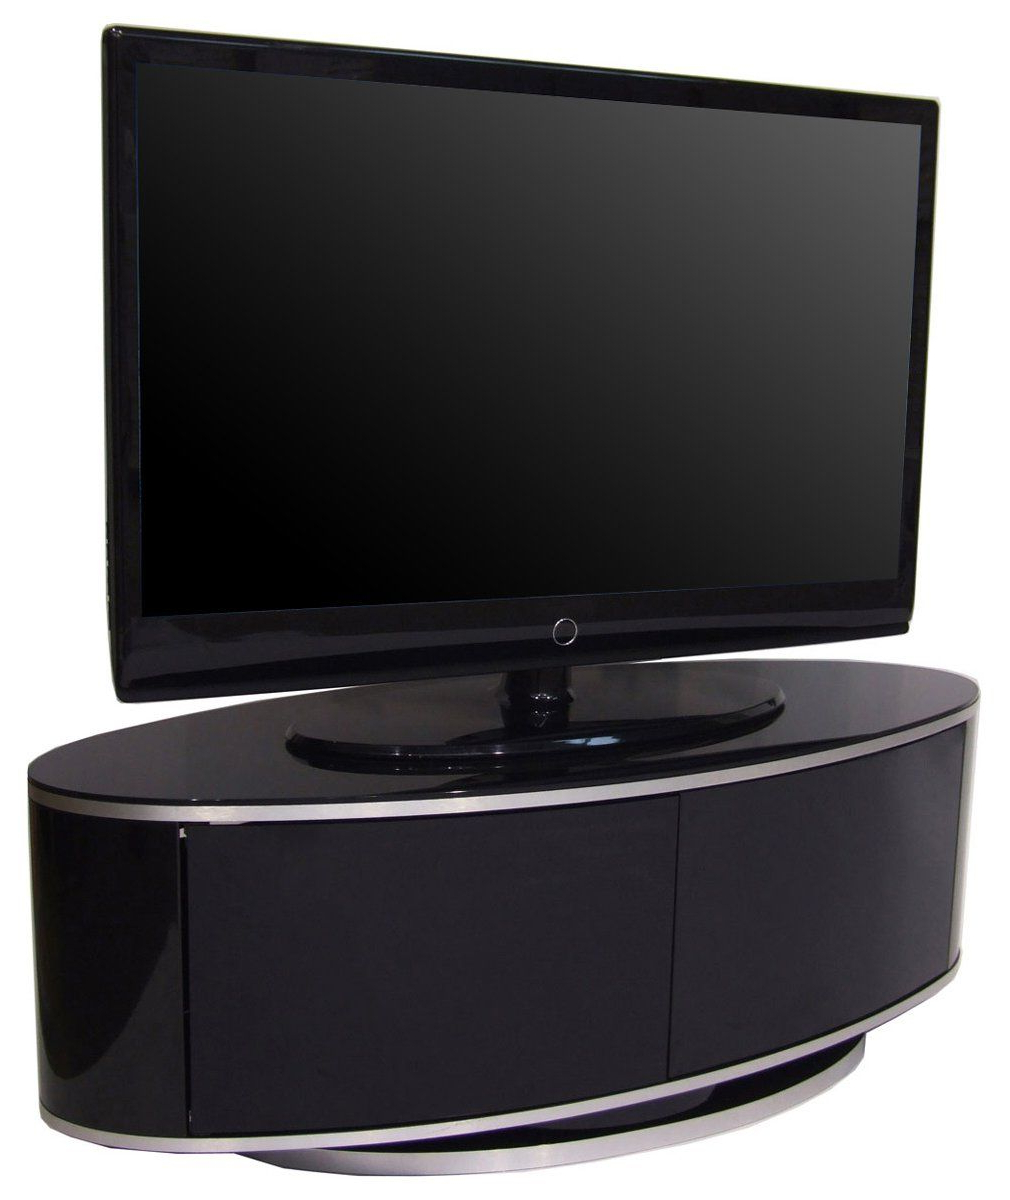 White Gloss Oval Tv Stands Pertaining To Most Up To Date Mda Designs High Gloss Black Oval Tv Stand With Swivel Base And (View 18 of 20)